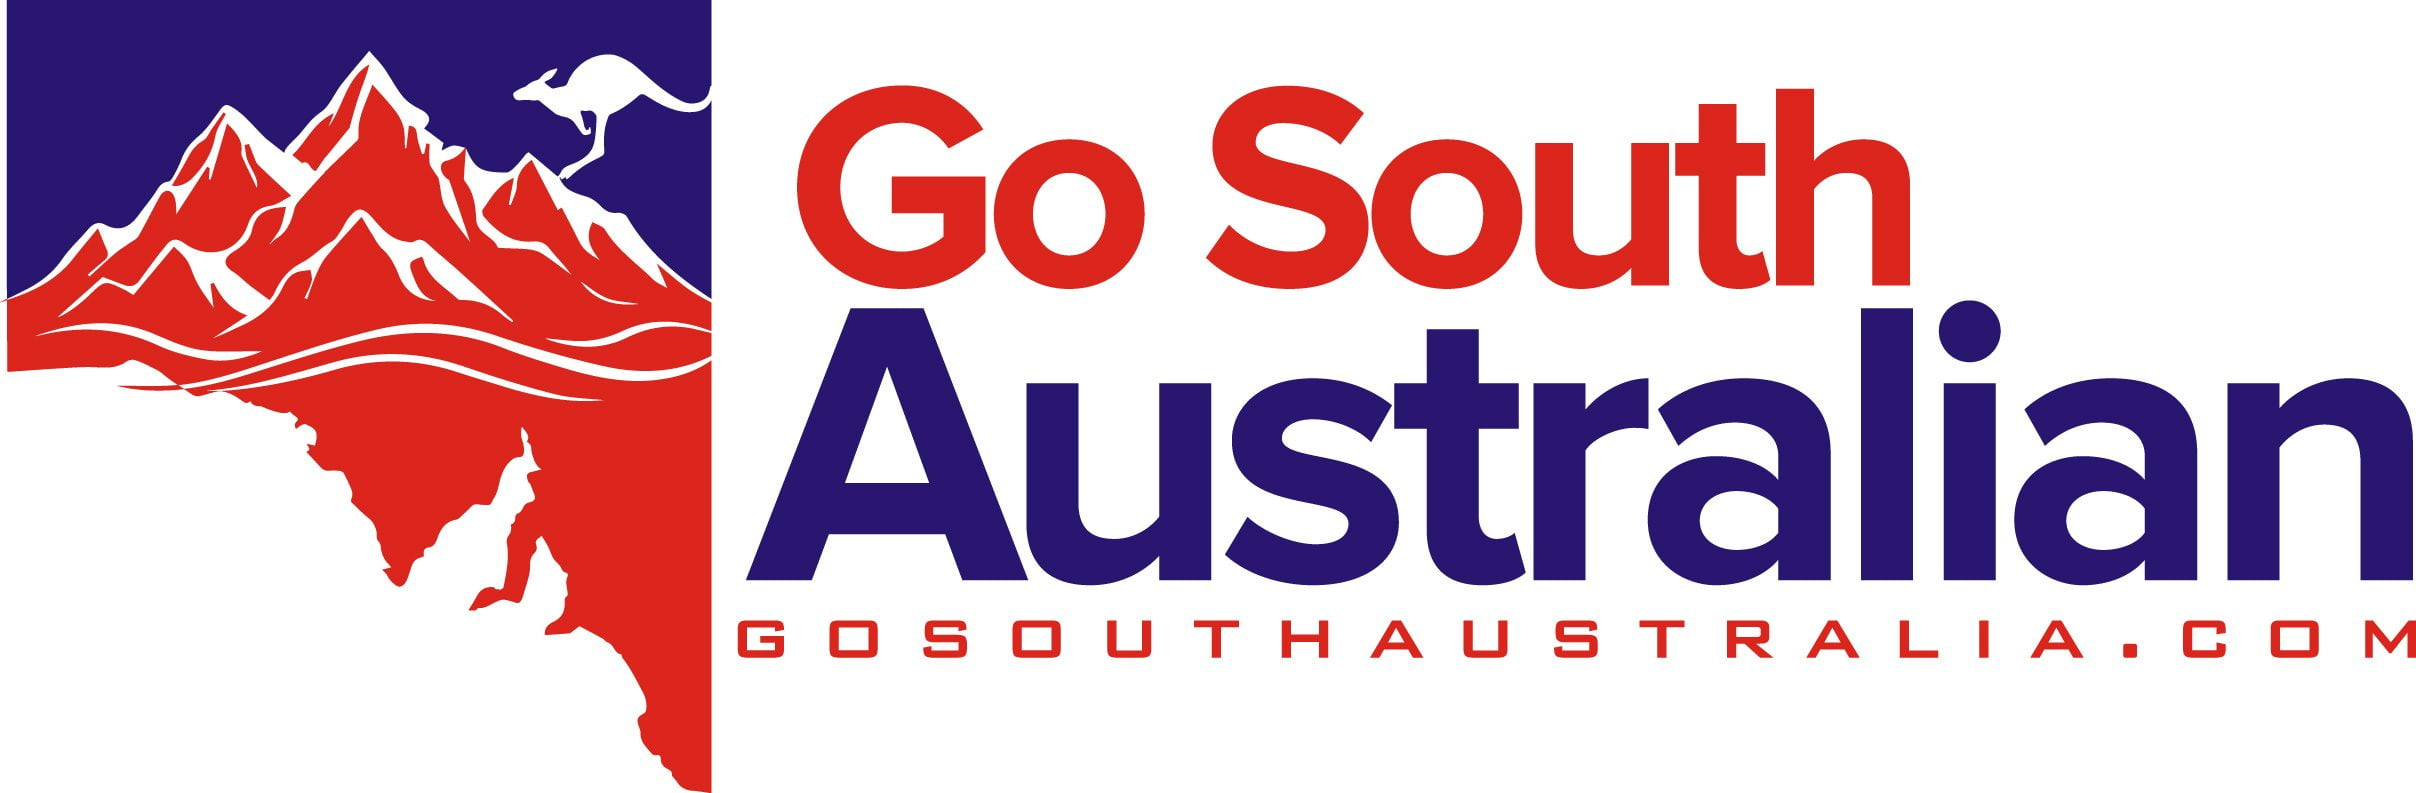 Go South Australia | Find and Review local South Australia Businesses|